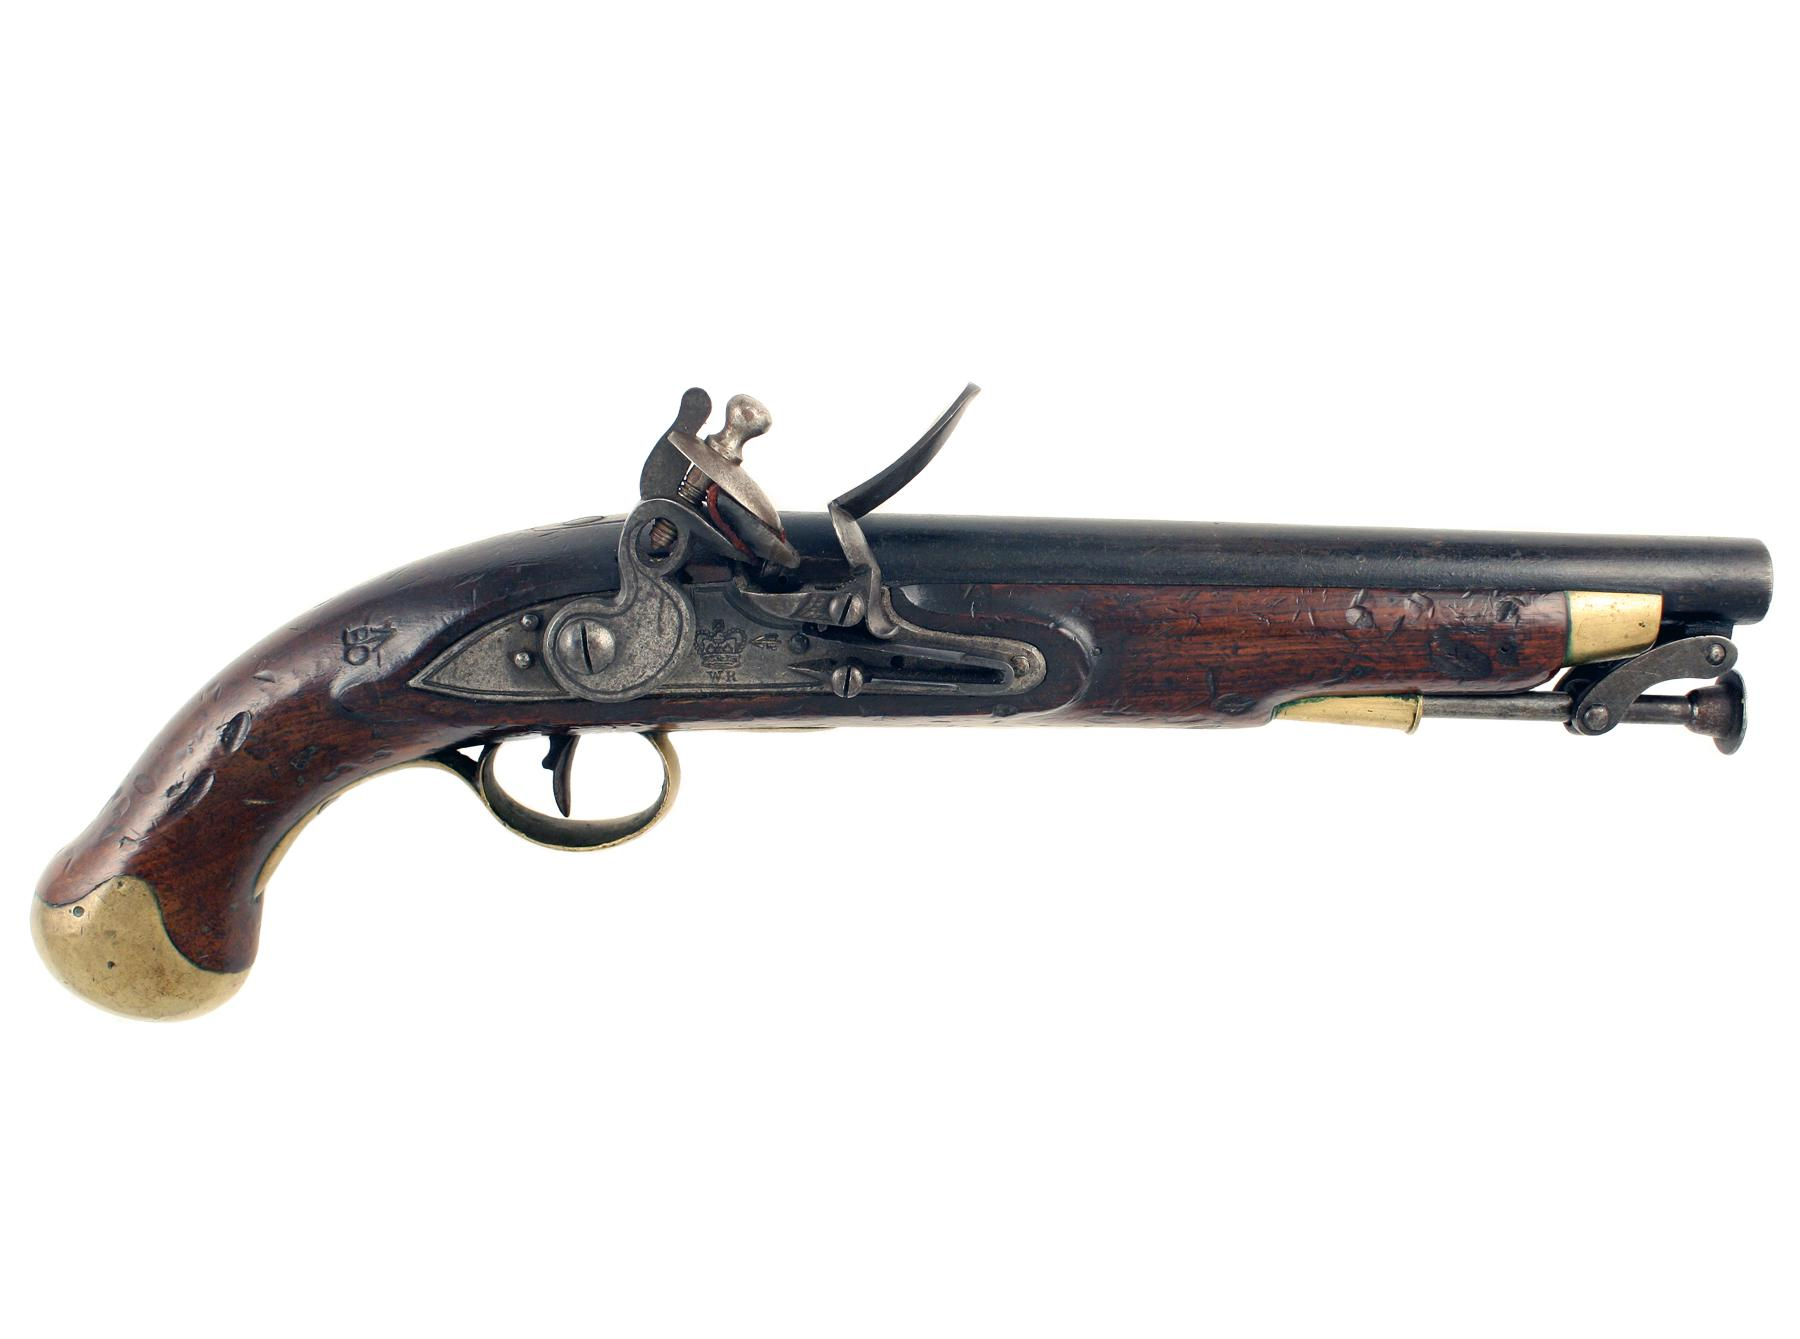 A William IV Sea Service Pistol